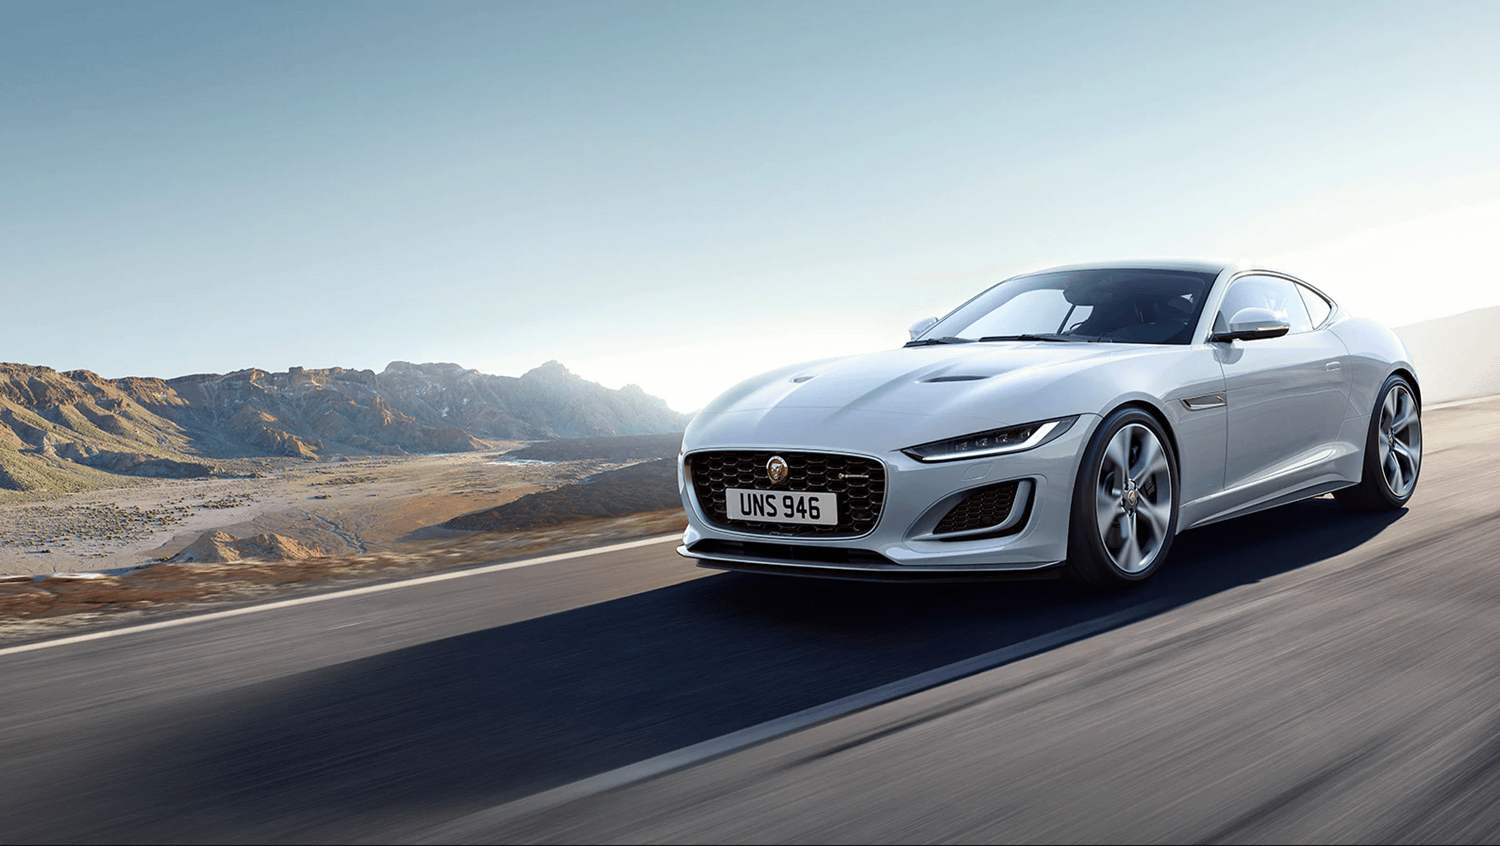 Silver Jaguar F-Type with mountainous backdrop